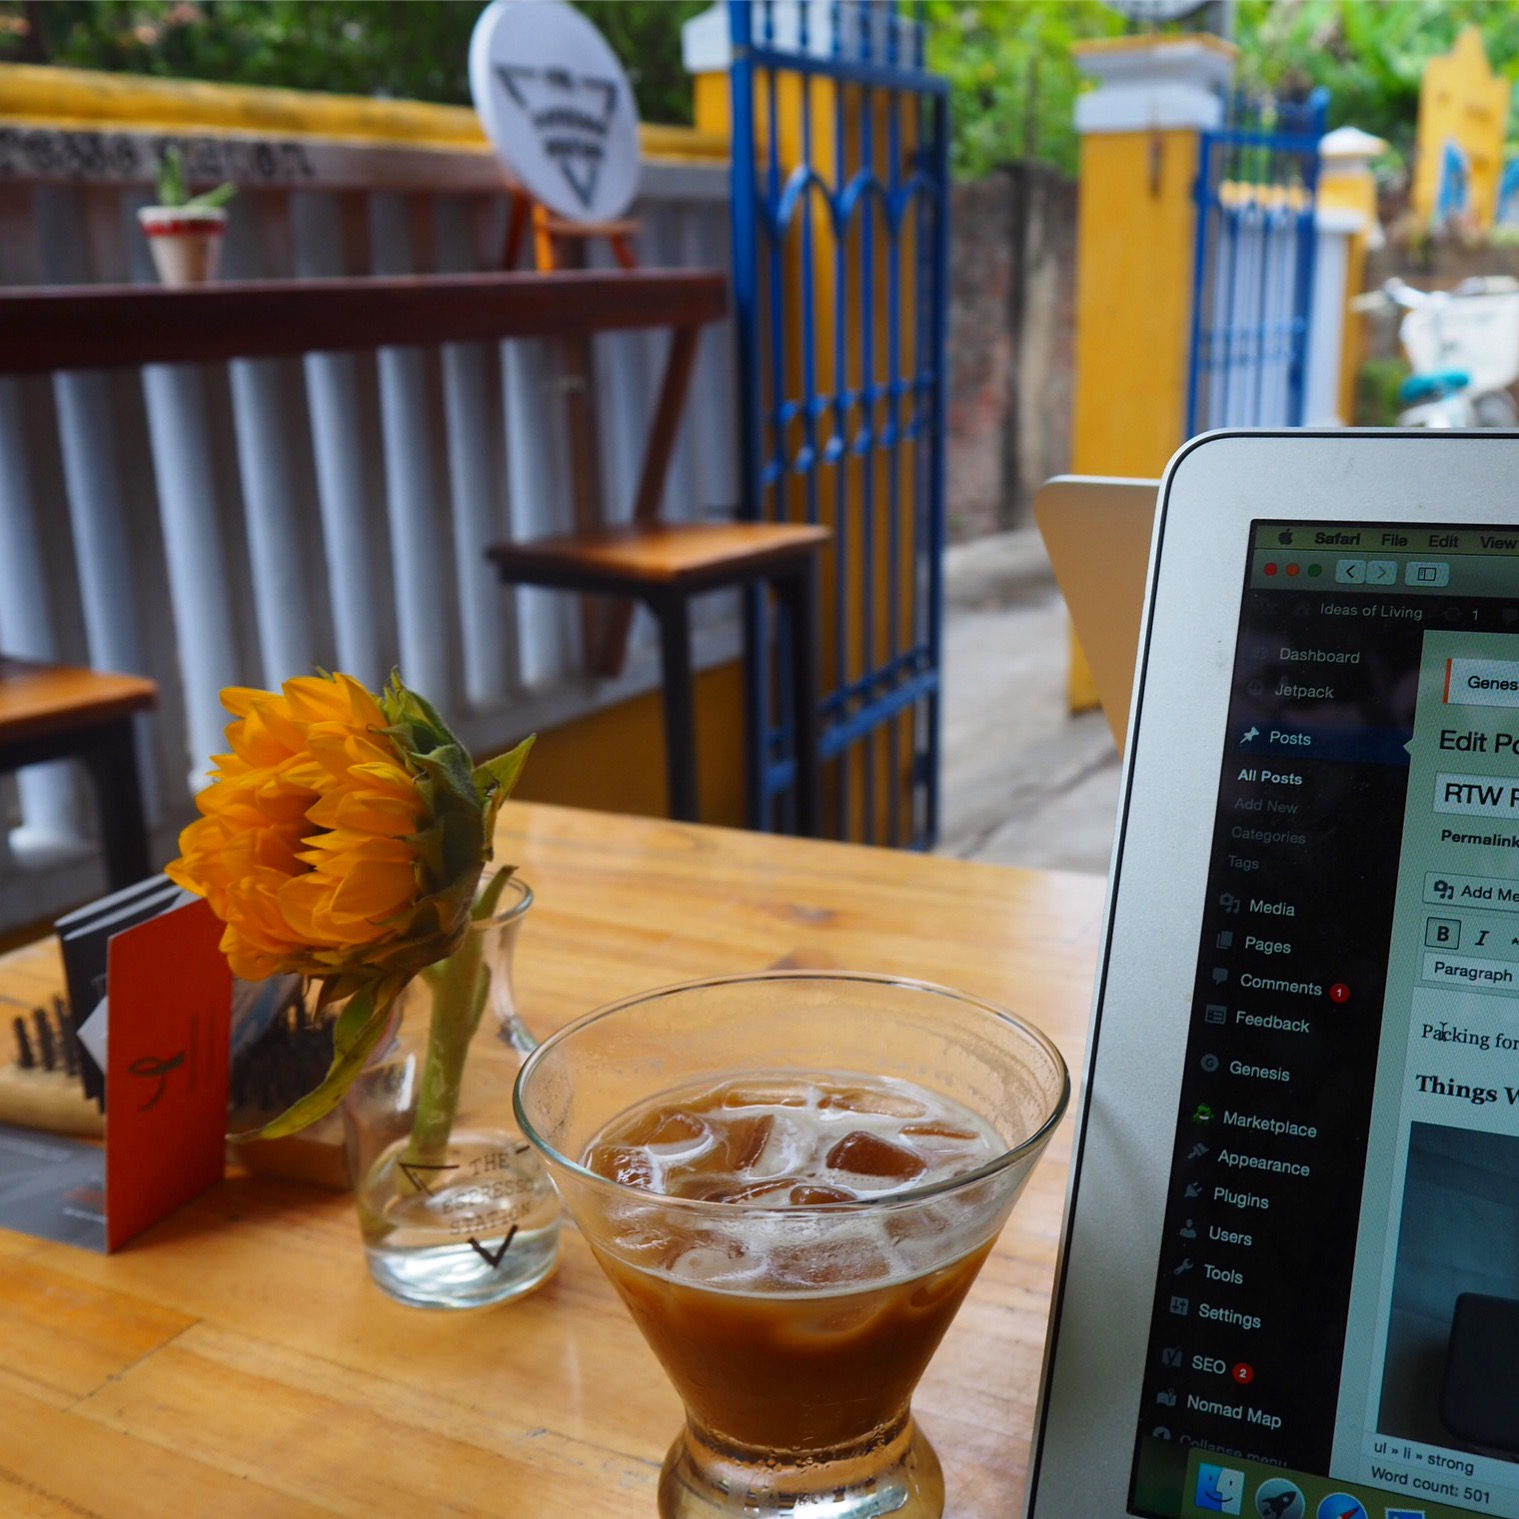 Blogging at our favorite coffee shop in Hoi An